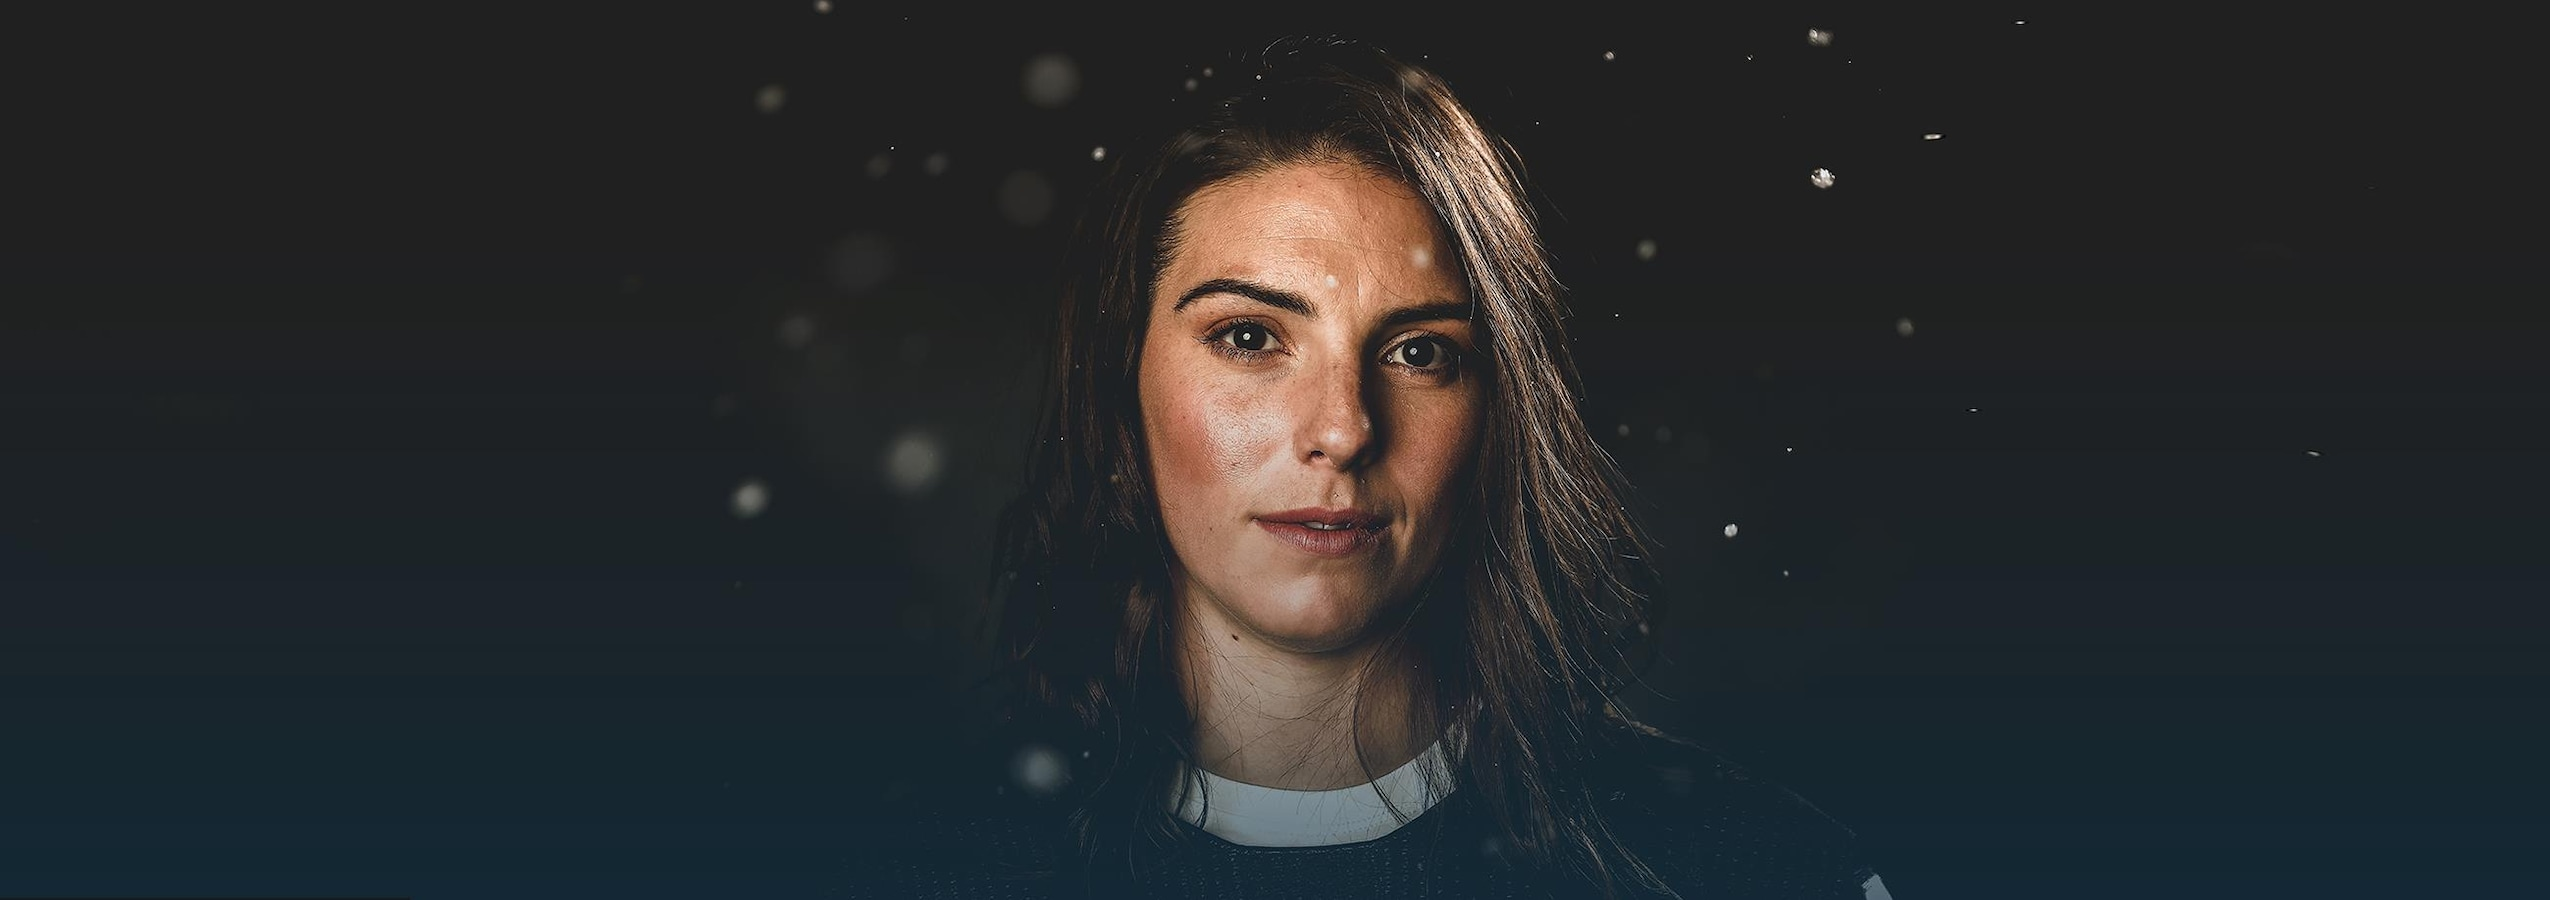 La hockeyeuse Hilary Knight